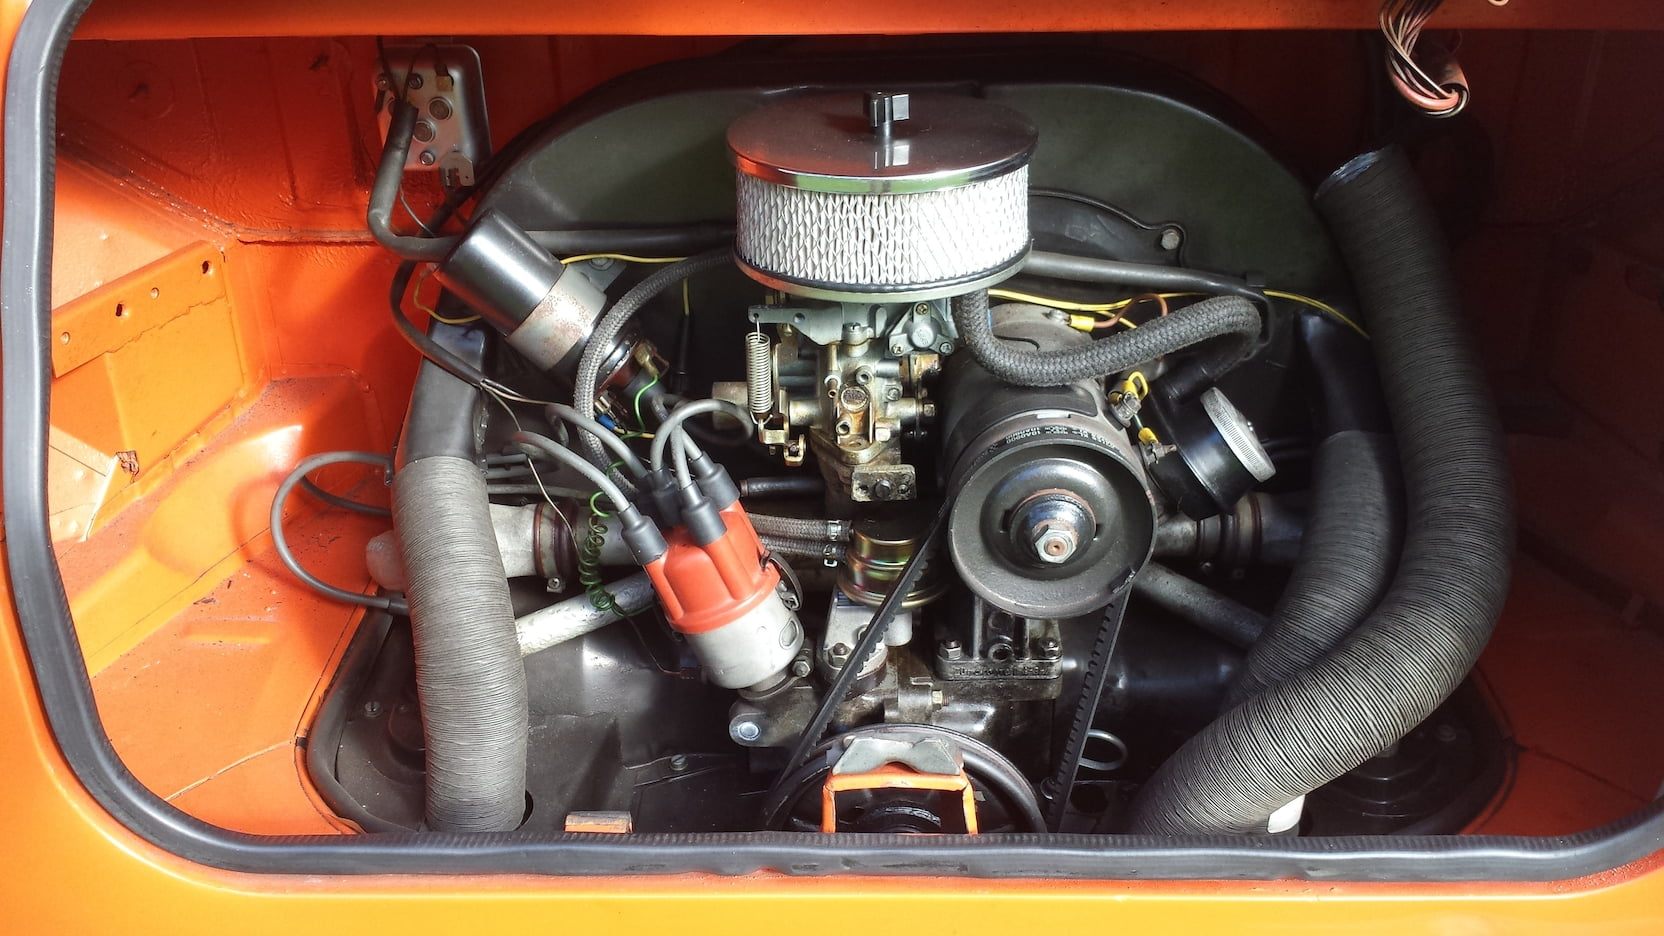 1974 Volkswagen Thing engine